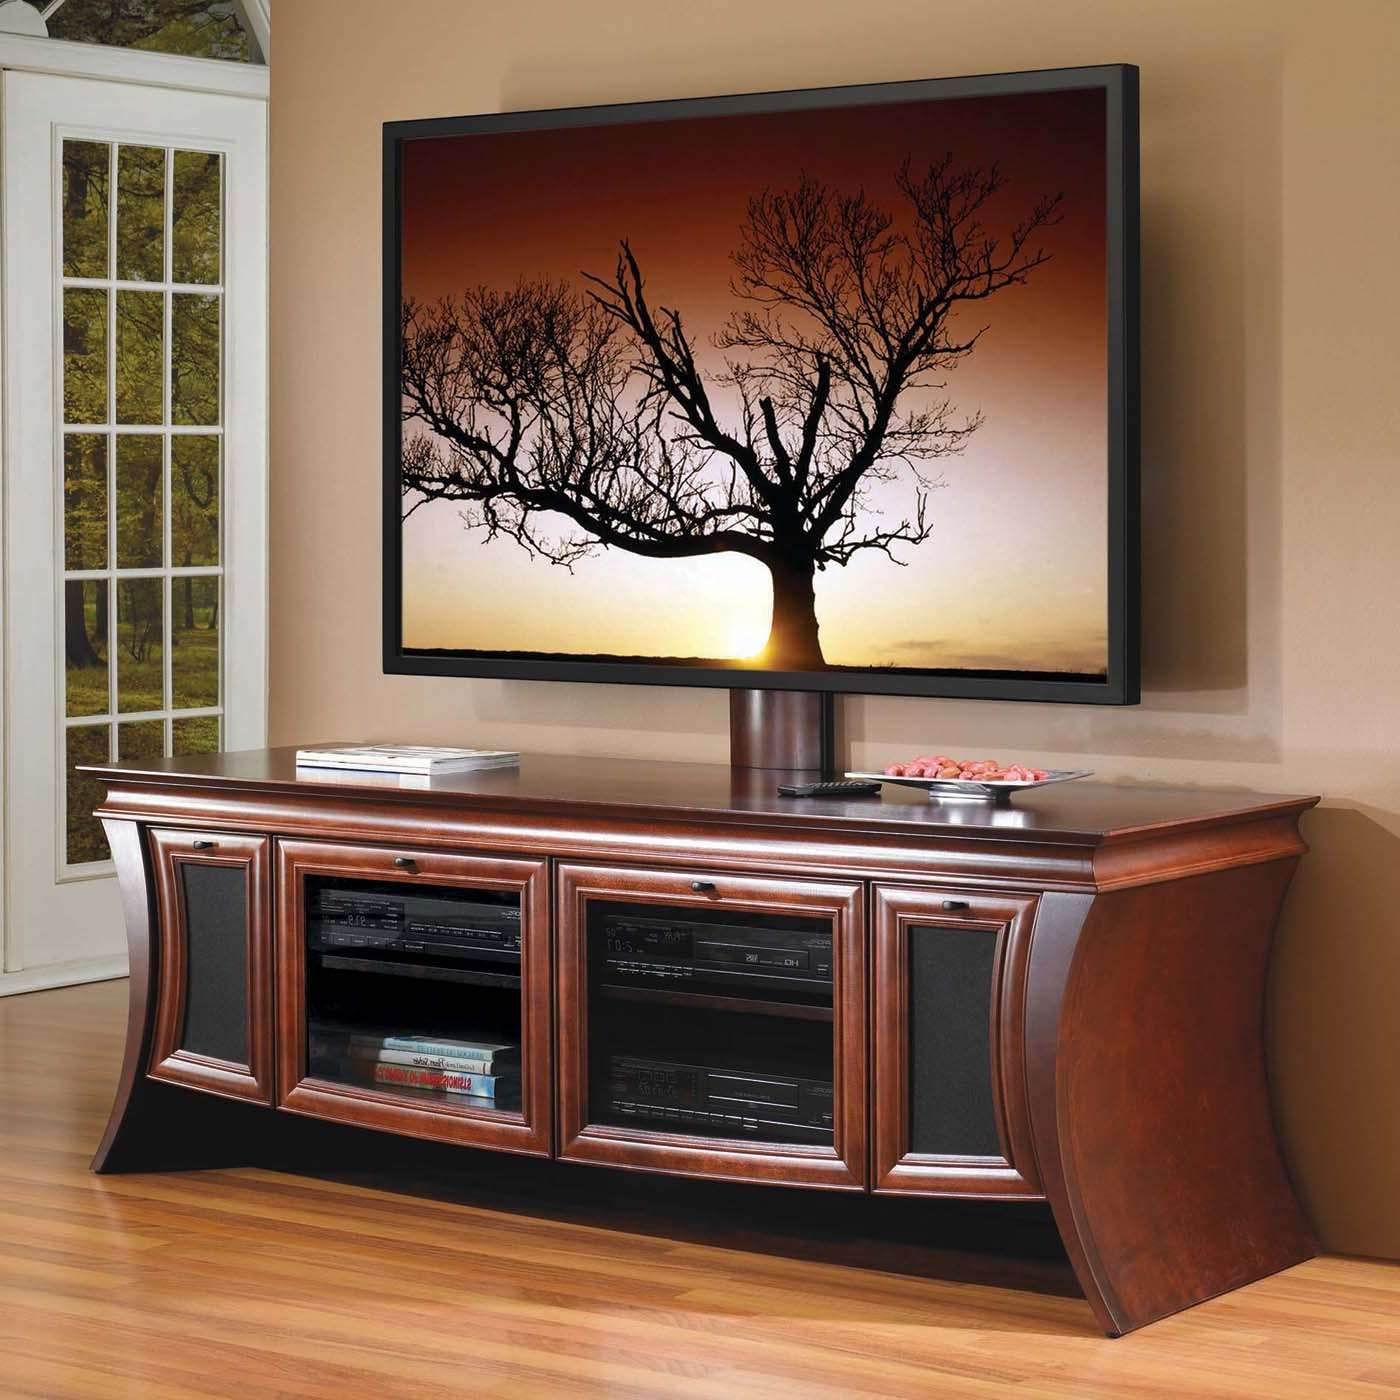 Deluxe Mount Sauder And Mount Mirage Panel Tv Stand As Wells As Regarding Mahogany Tv Cabinets (View 7 of 20)